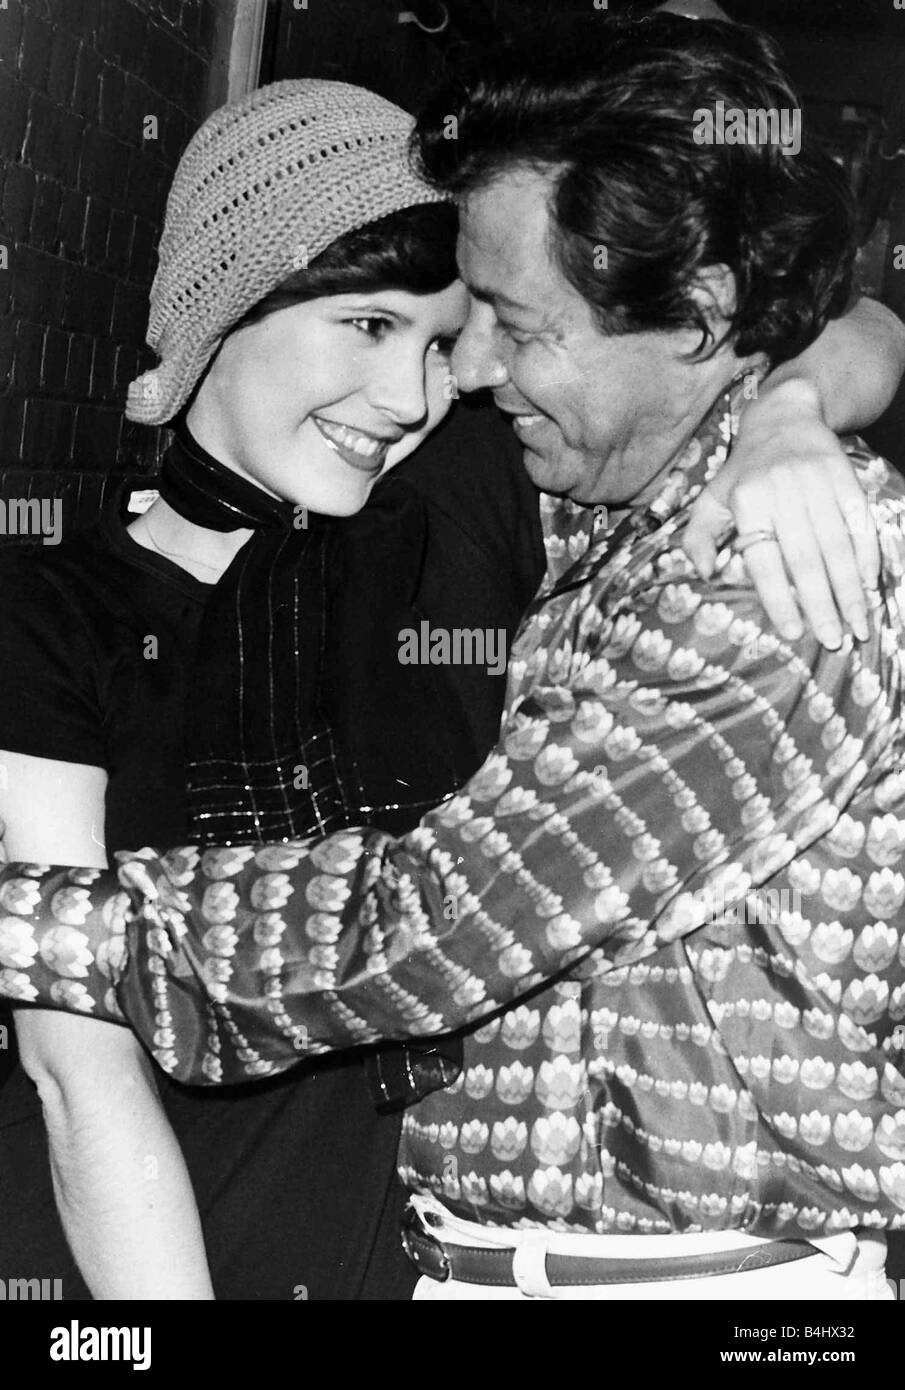 Carrie Fisher And Father Eddie Fisher 1974 Stock Photo, Royalty Free ...